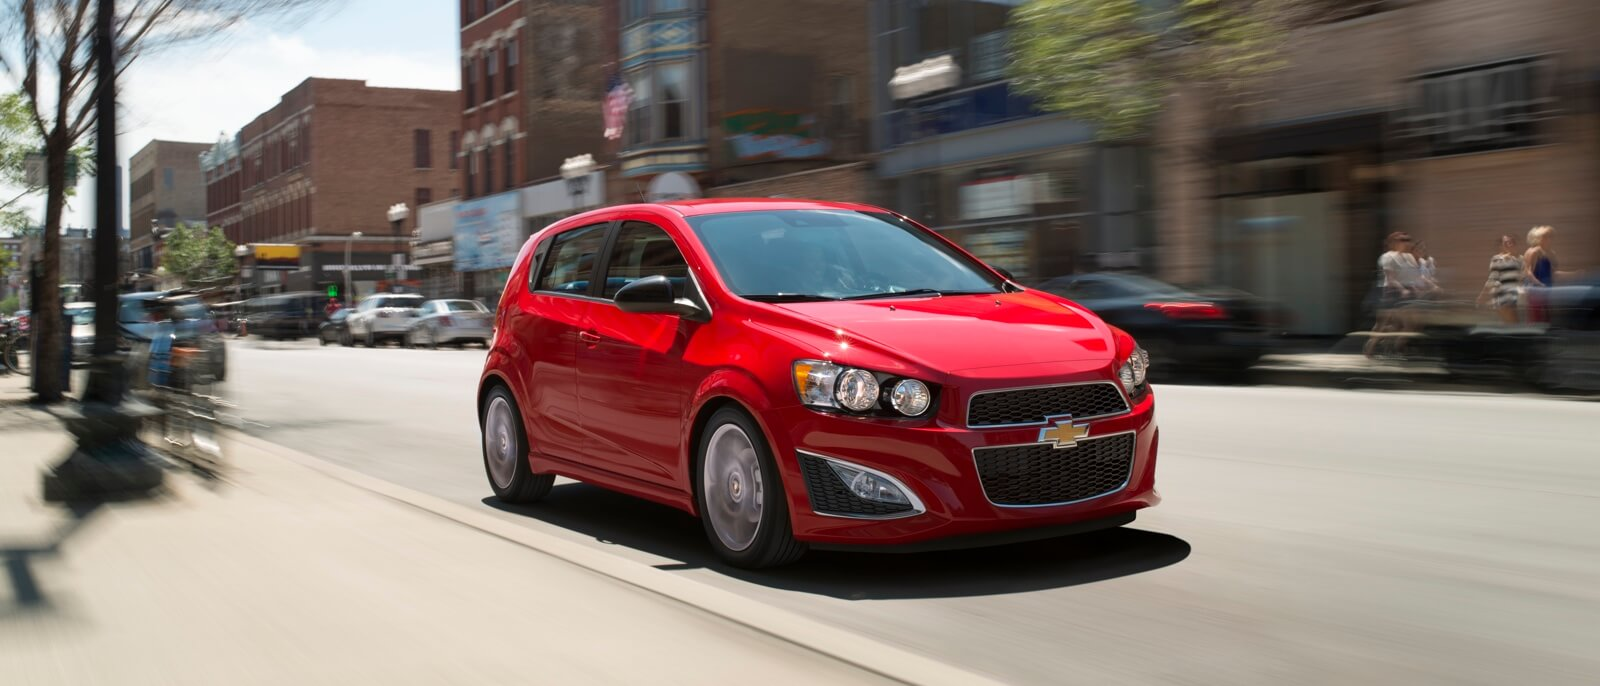 2015 Chevrolet Sonic in red